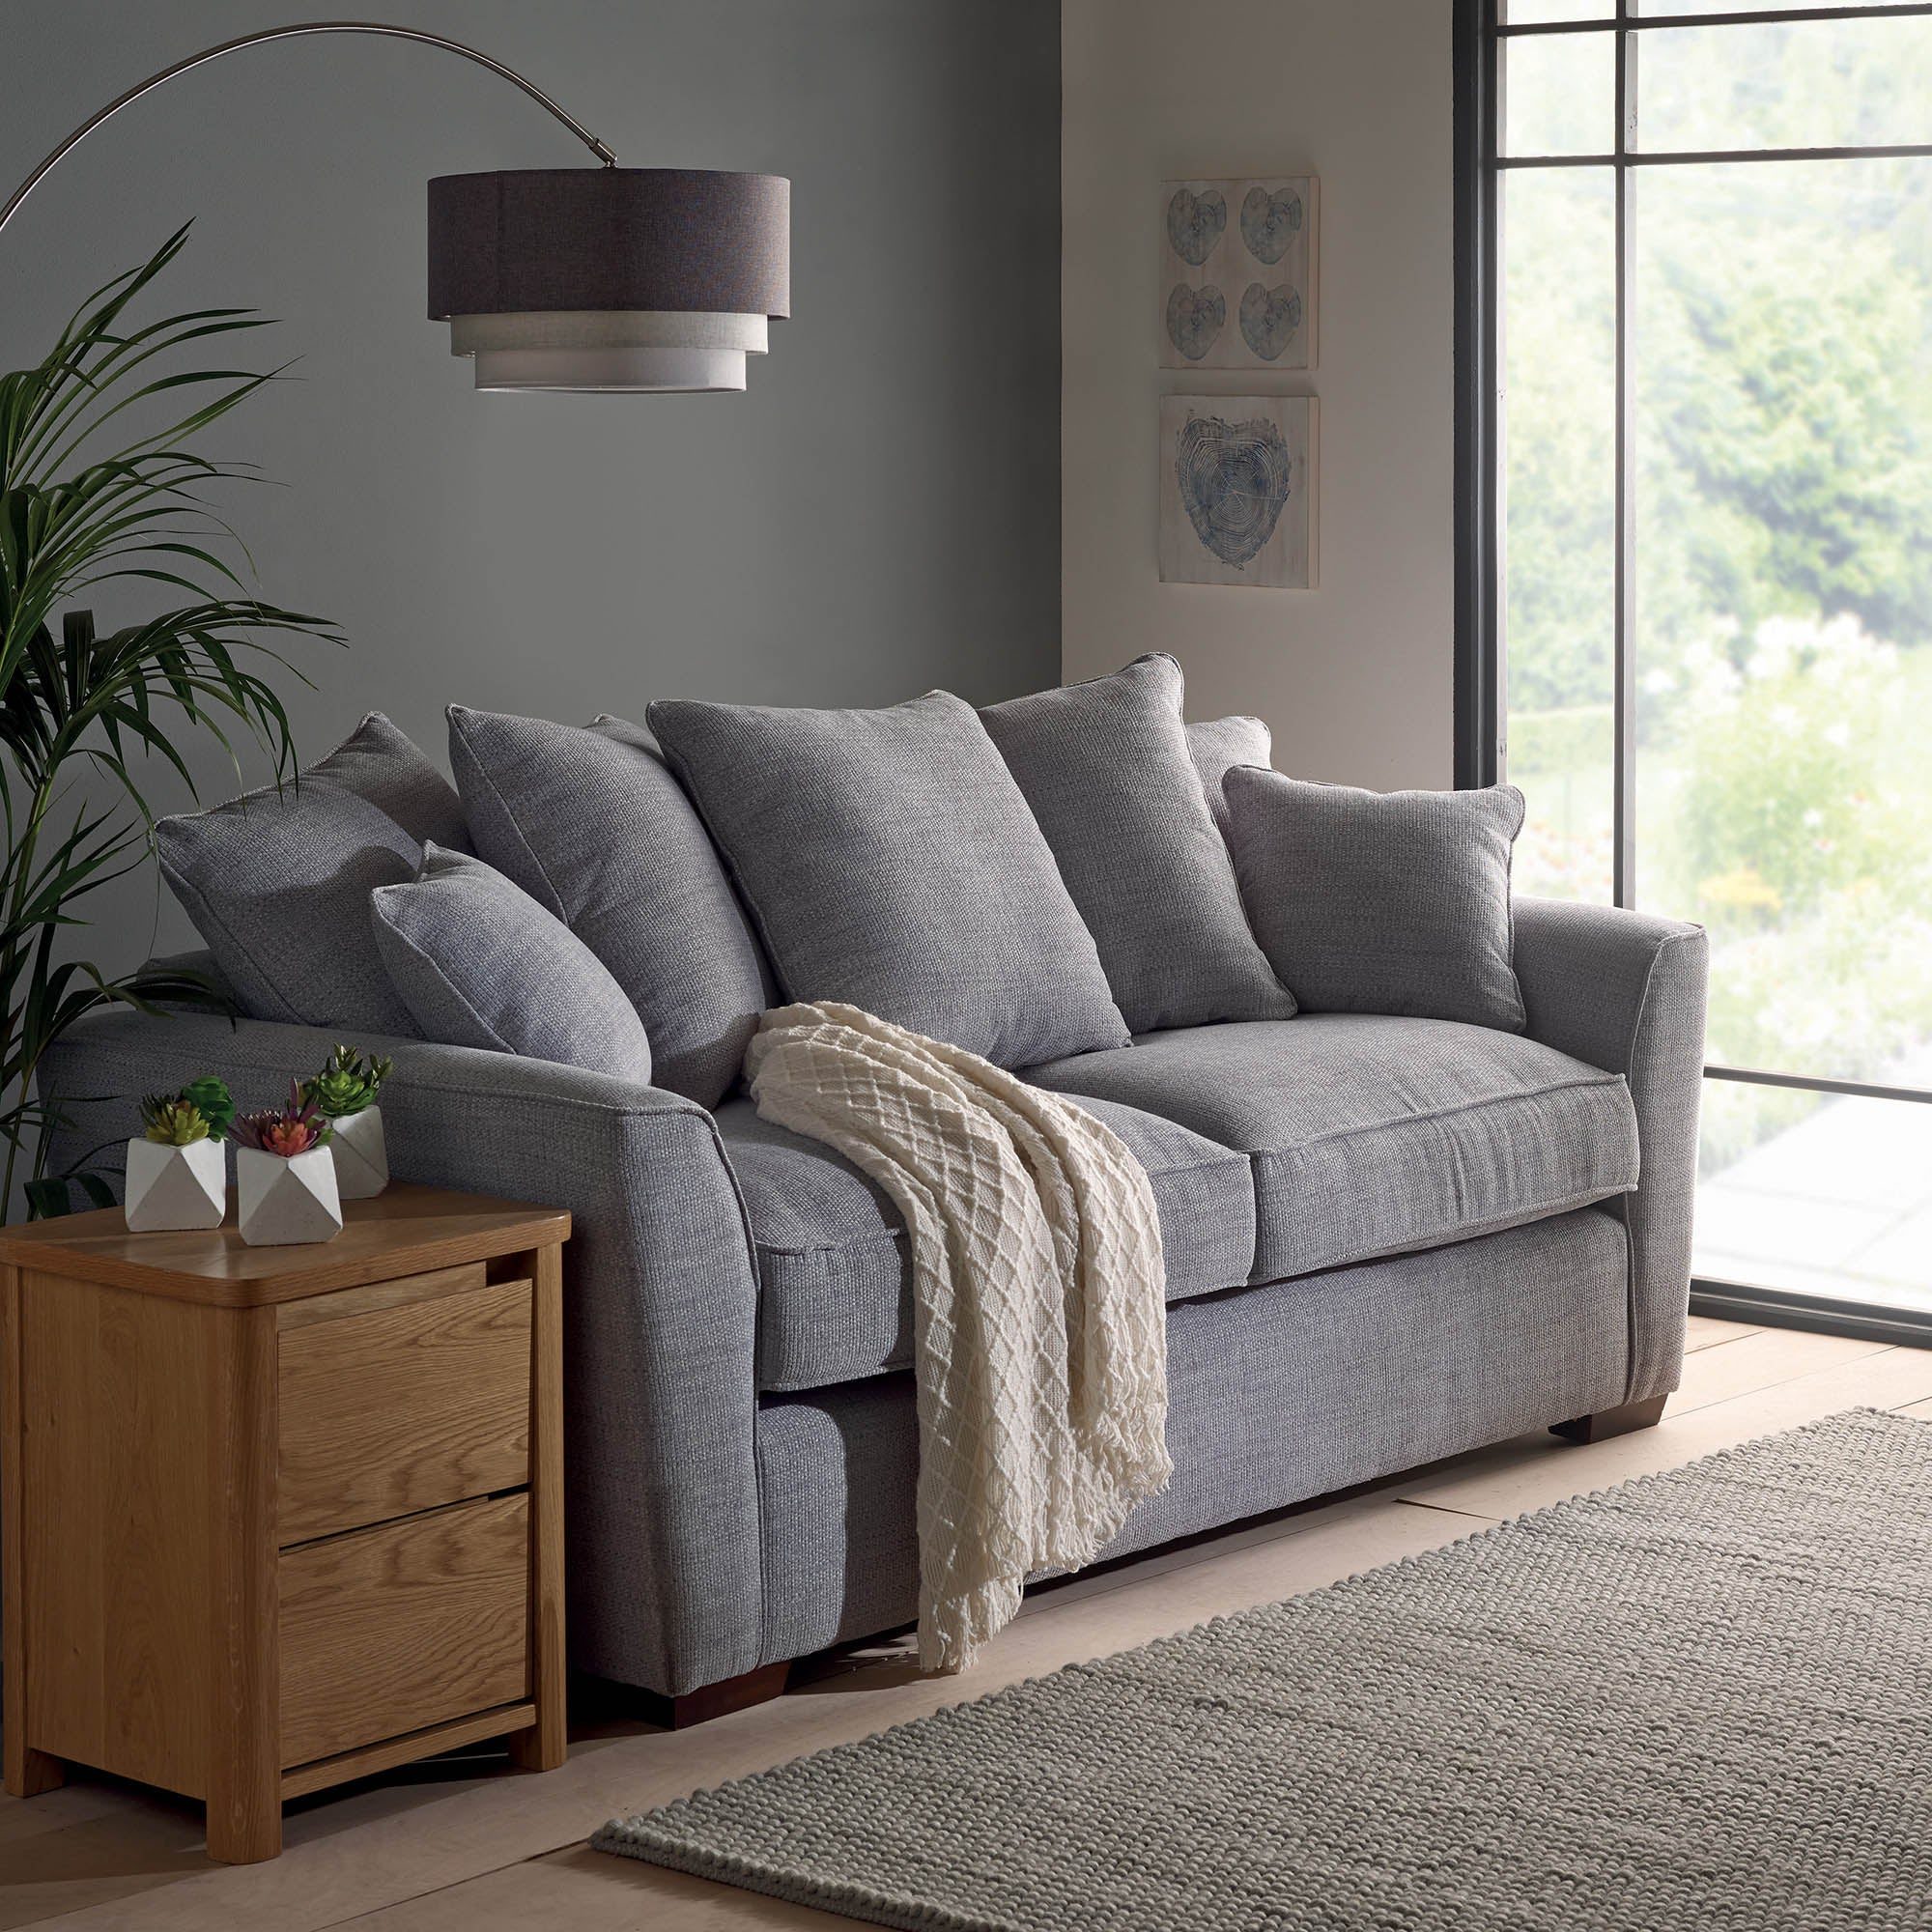 Sofa Throws Dunelm Buy Modern Fern Cushion line Cushions And